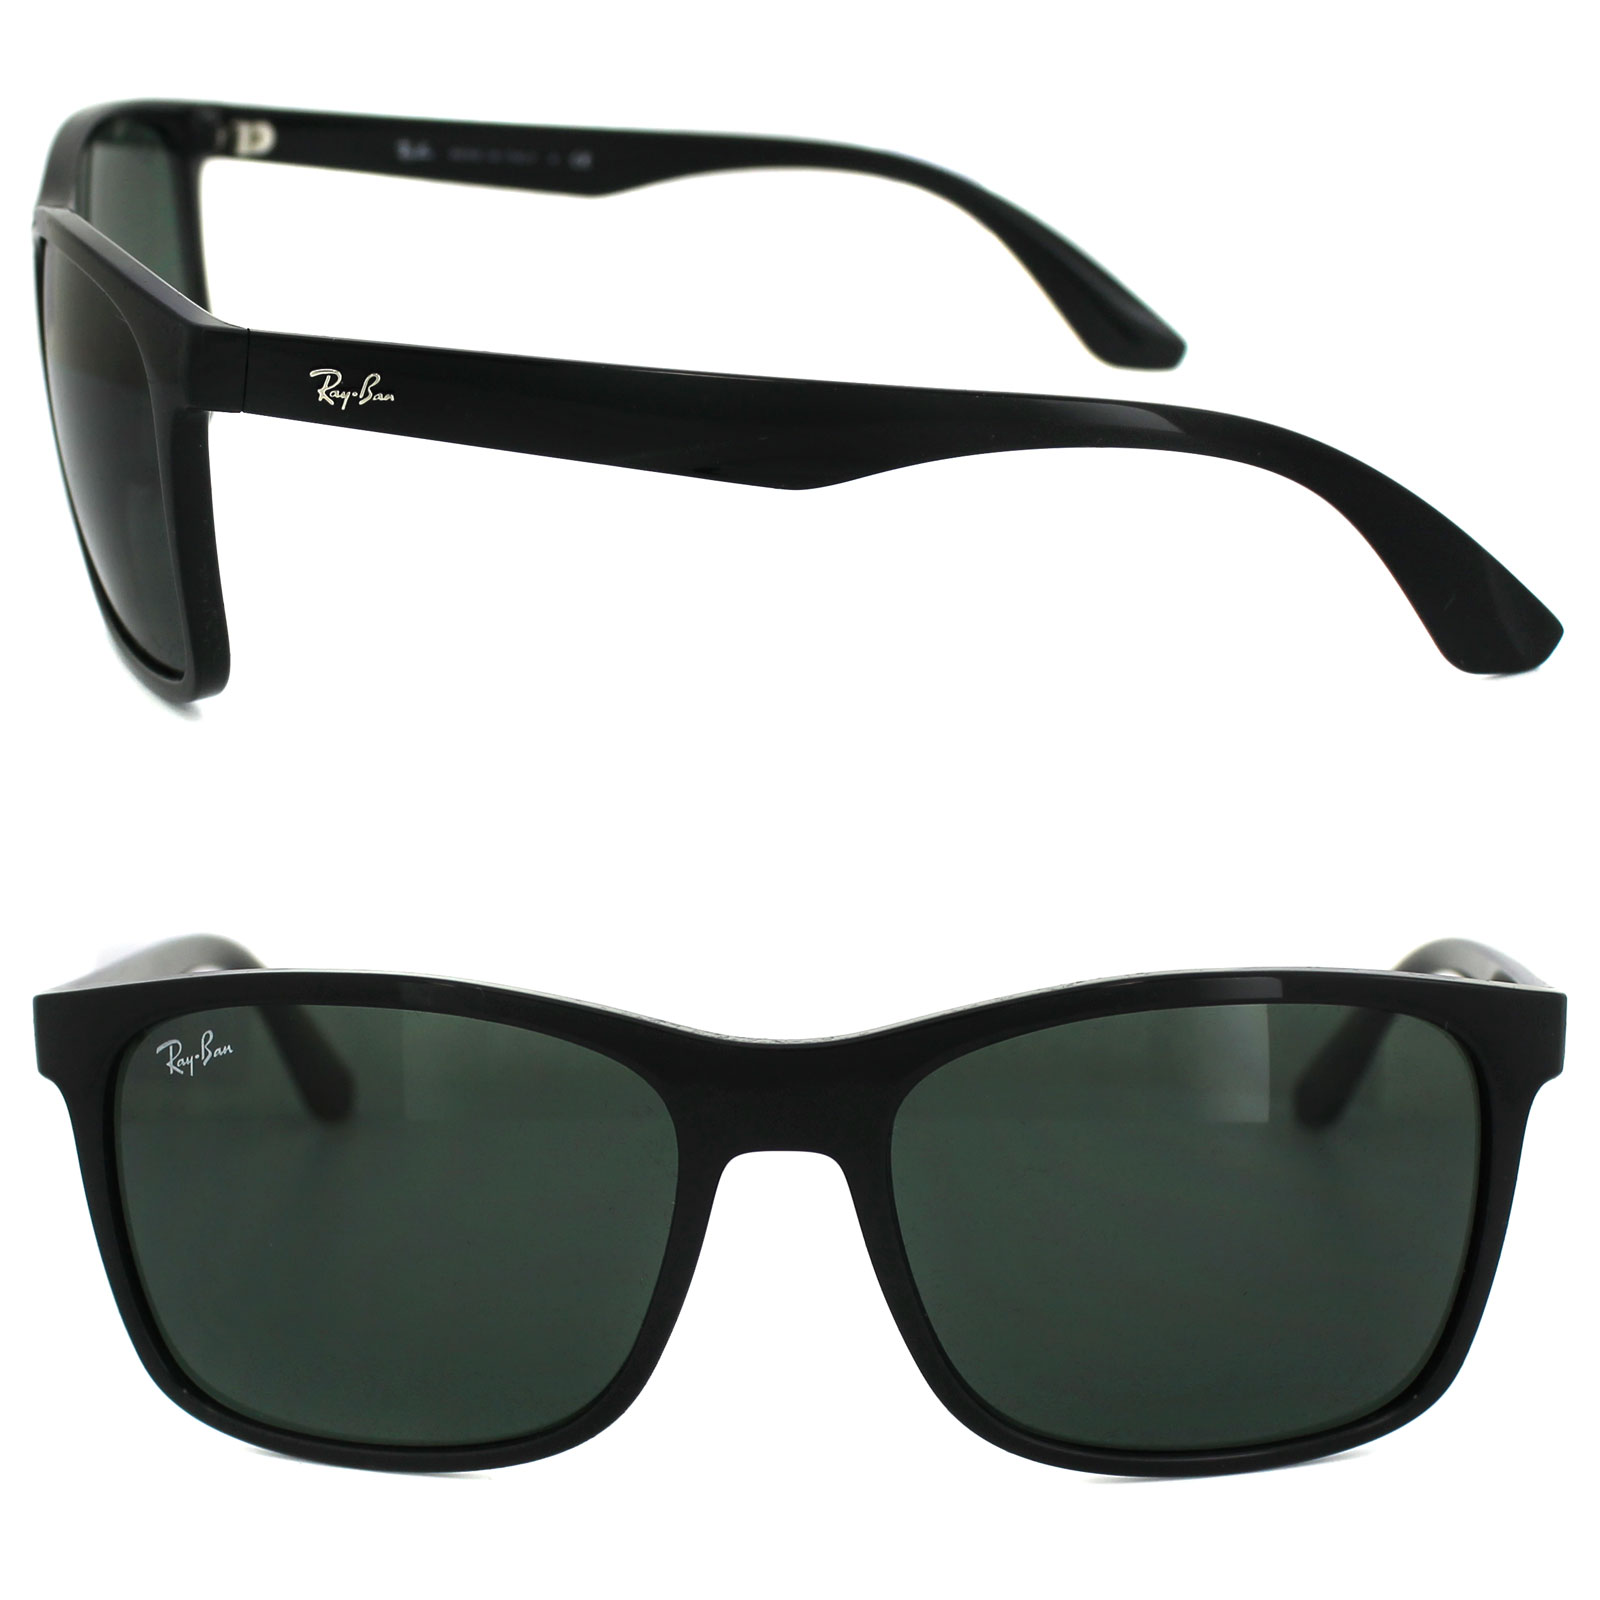 232e754401 Ray-Ban Sunglasses 4232 601 71 Black Green 8053672498202